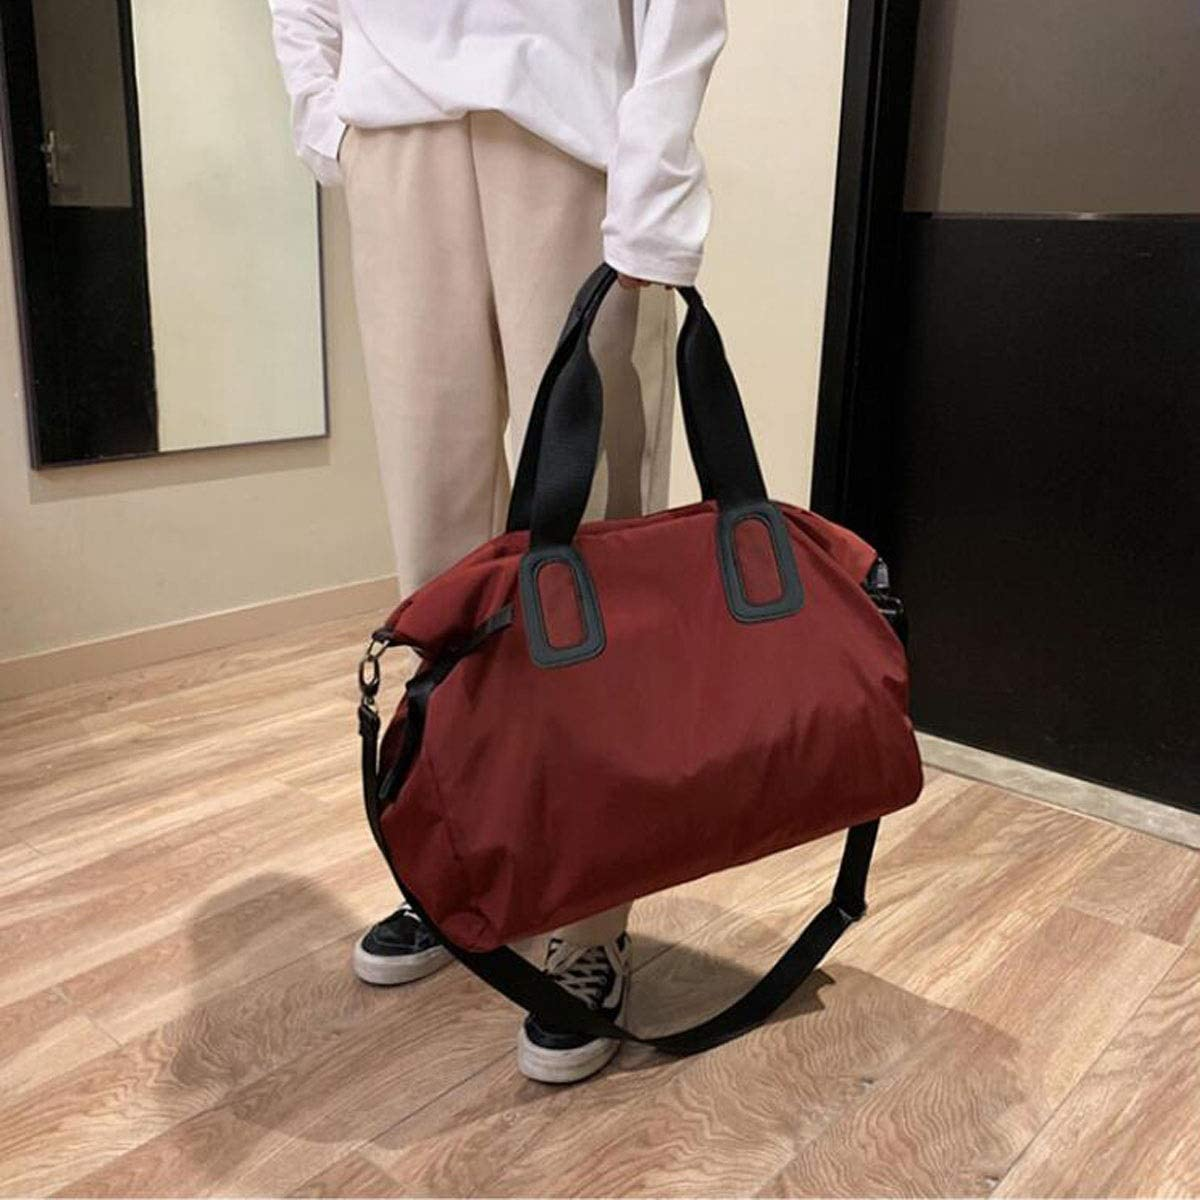 Kaiyitong Sports Bag Portable Sports Gym Bag Size: 482238cm Color : Wine red Mens Large-Capacity Travel Short-Distance Travel Boarding Duffel Bag